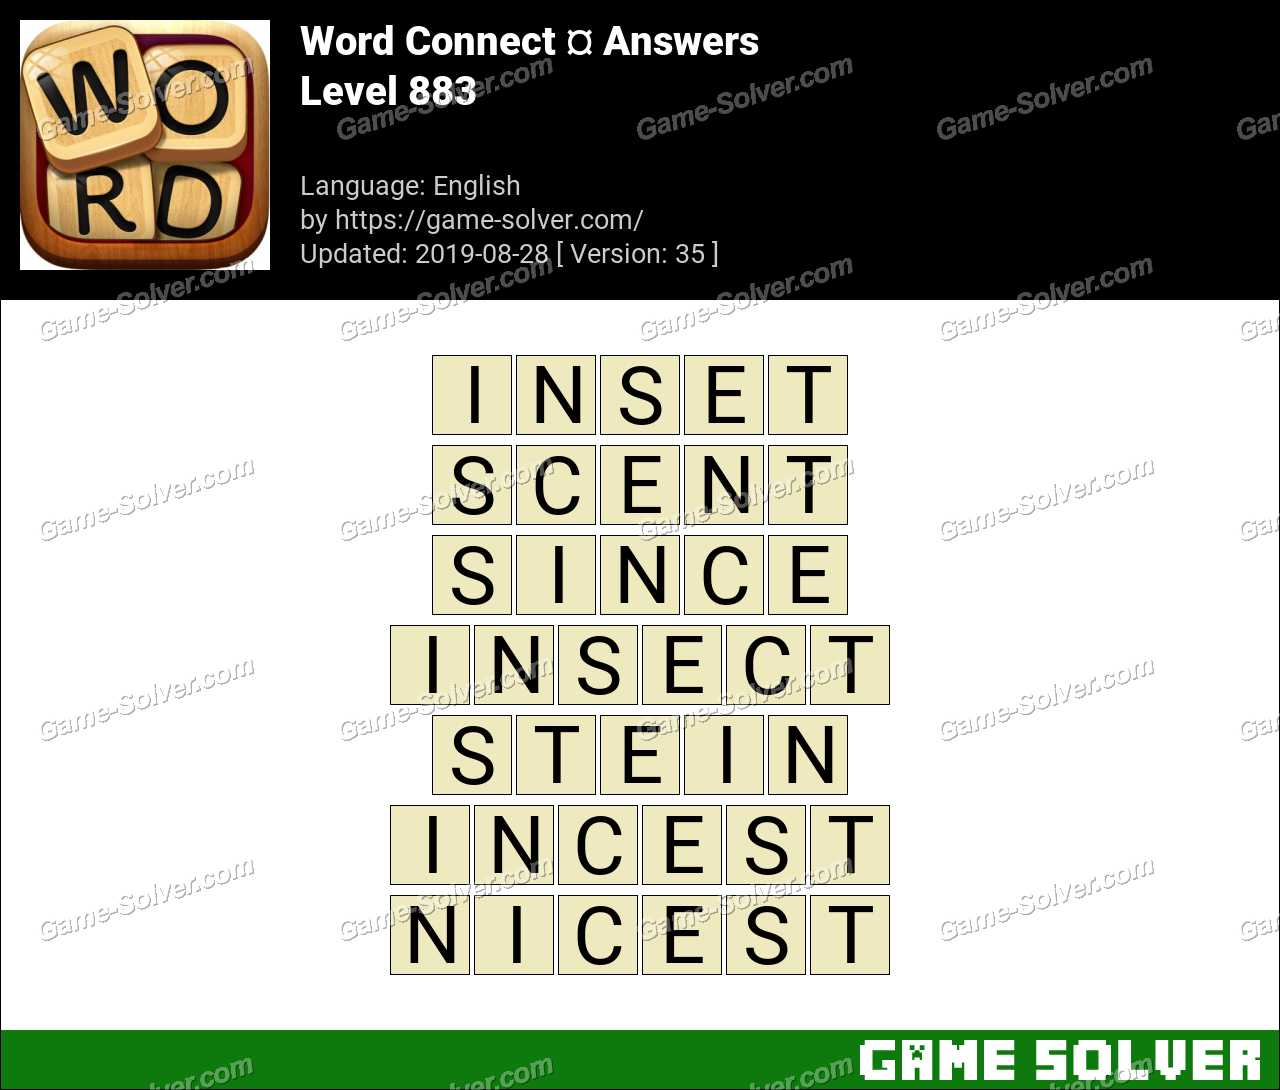 Word Connect Level 883 Answers